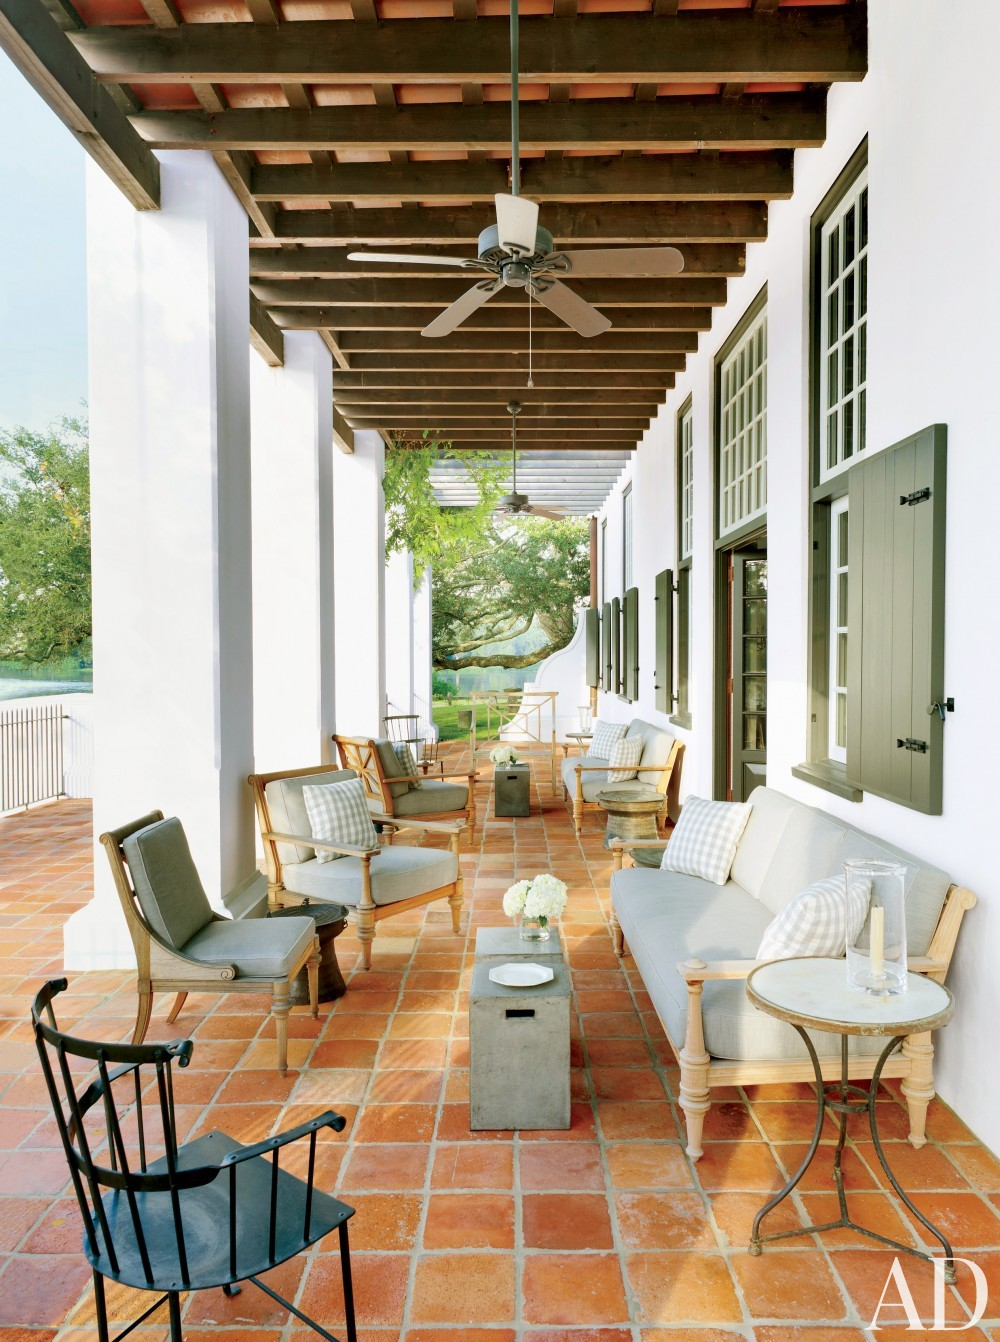 Traditional Outdoor Space by McAline Tankersley Architecture; McAlpine Booth & Ferrier Interiors and McAline Tankersley Architecture; McAlpine Booth & Ferrier Interiors in Baton Rouge, LA